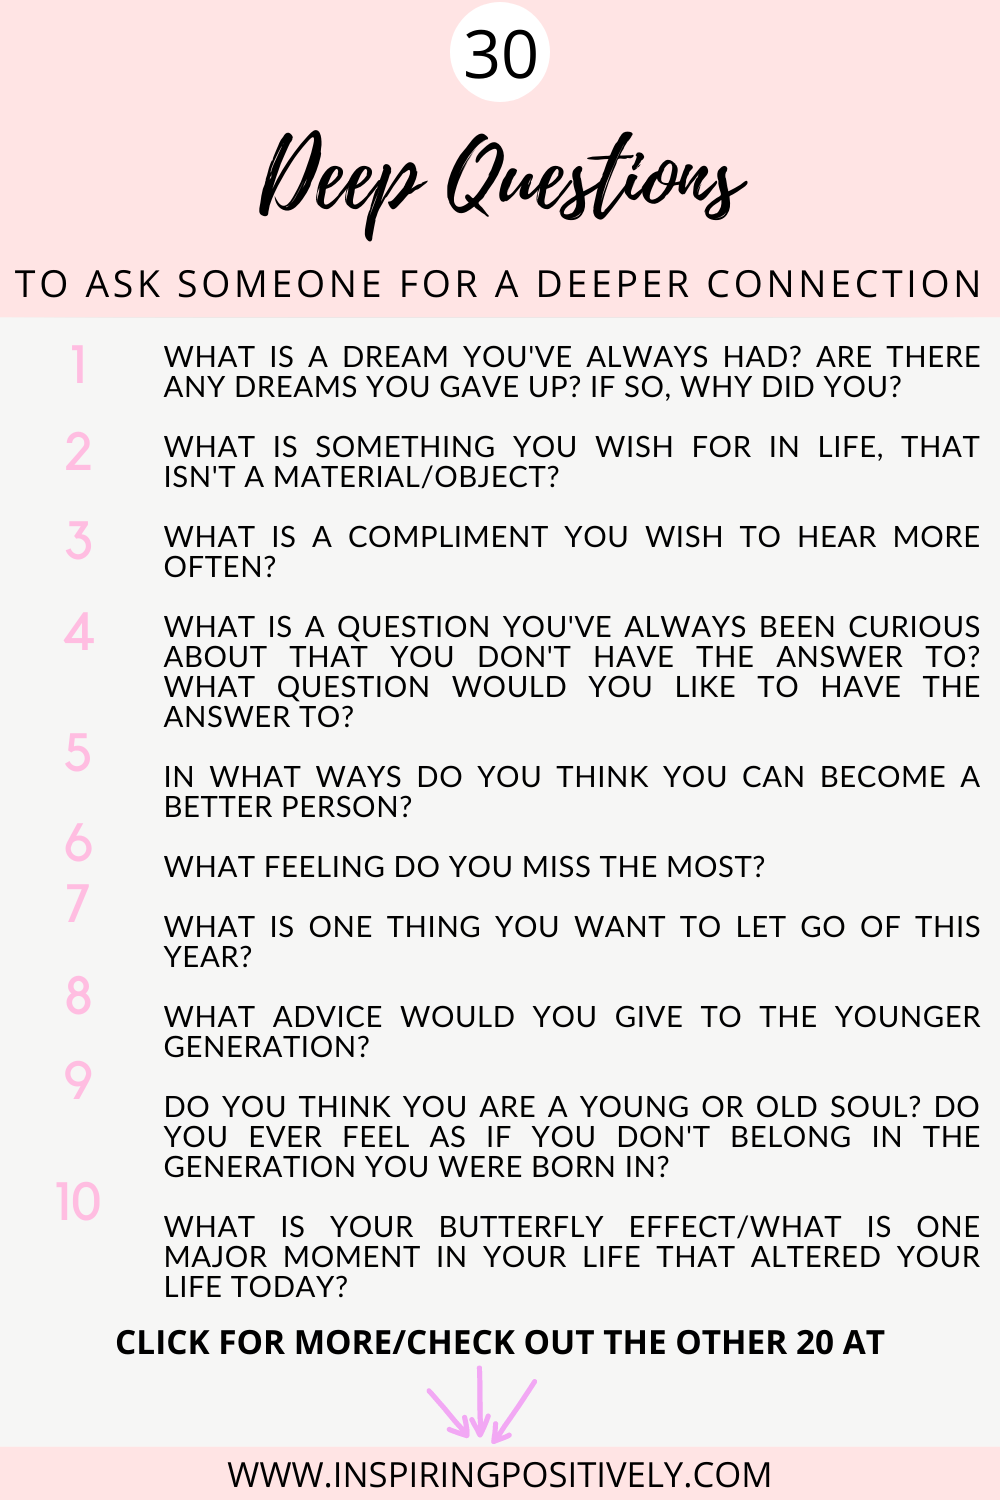 30 Deep Questions to Ask Someone for a Deeper Connection